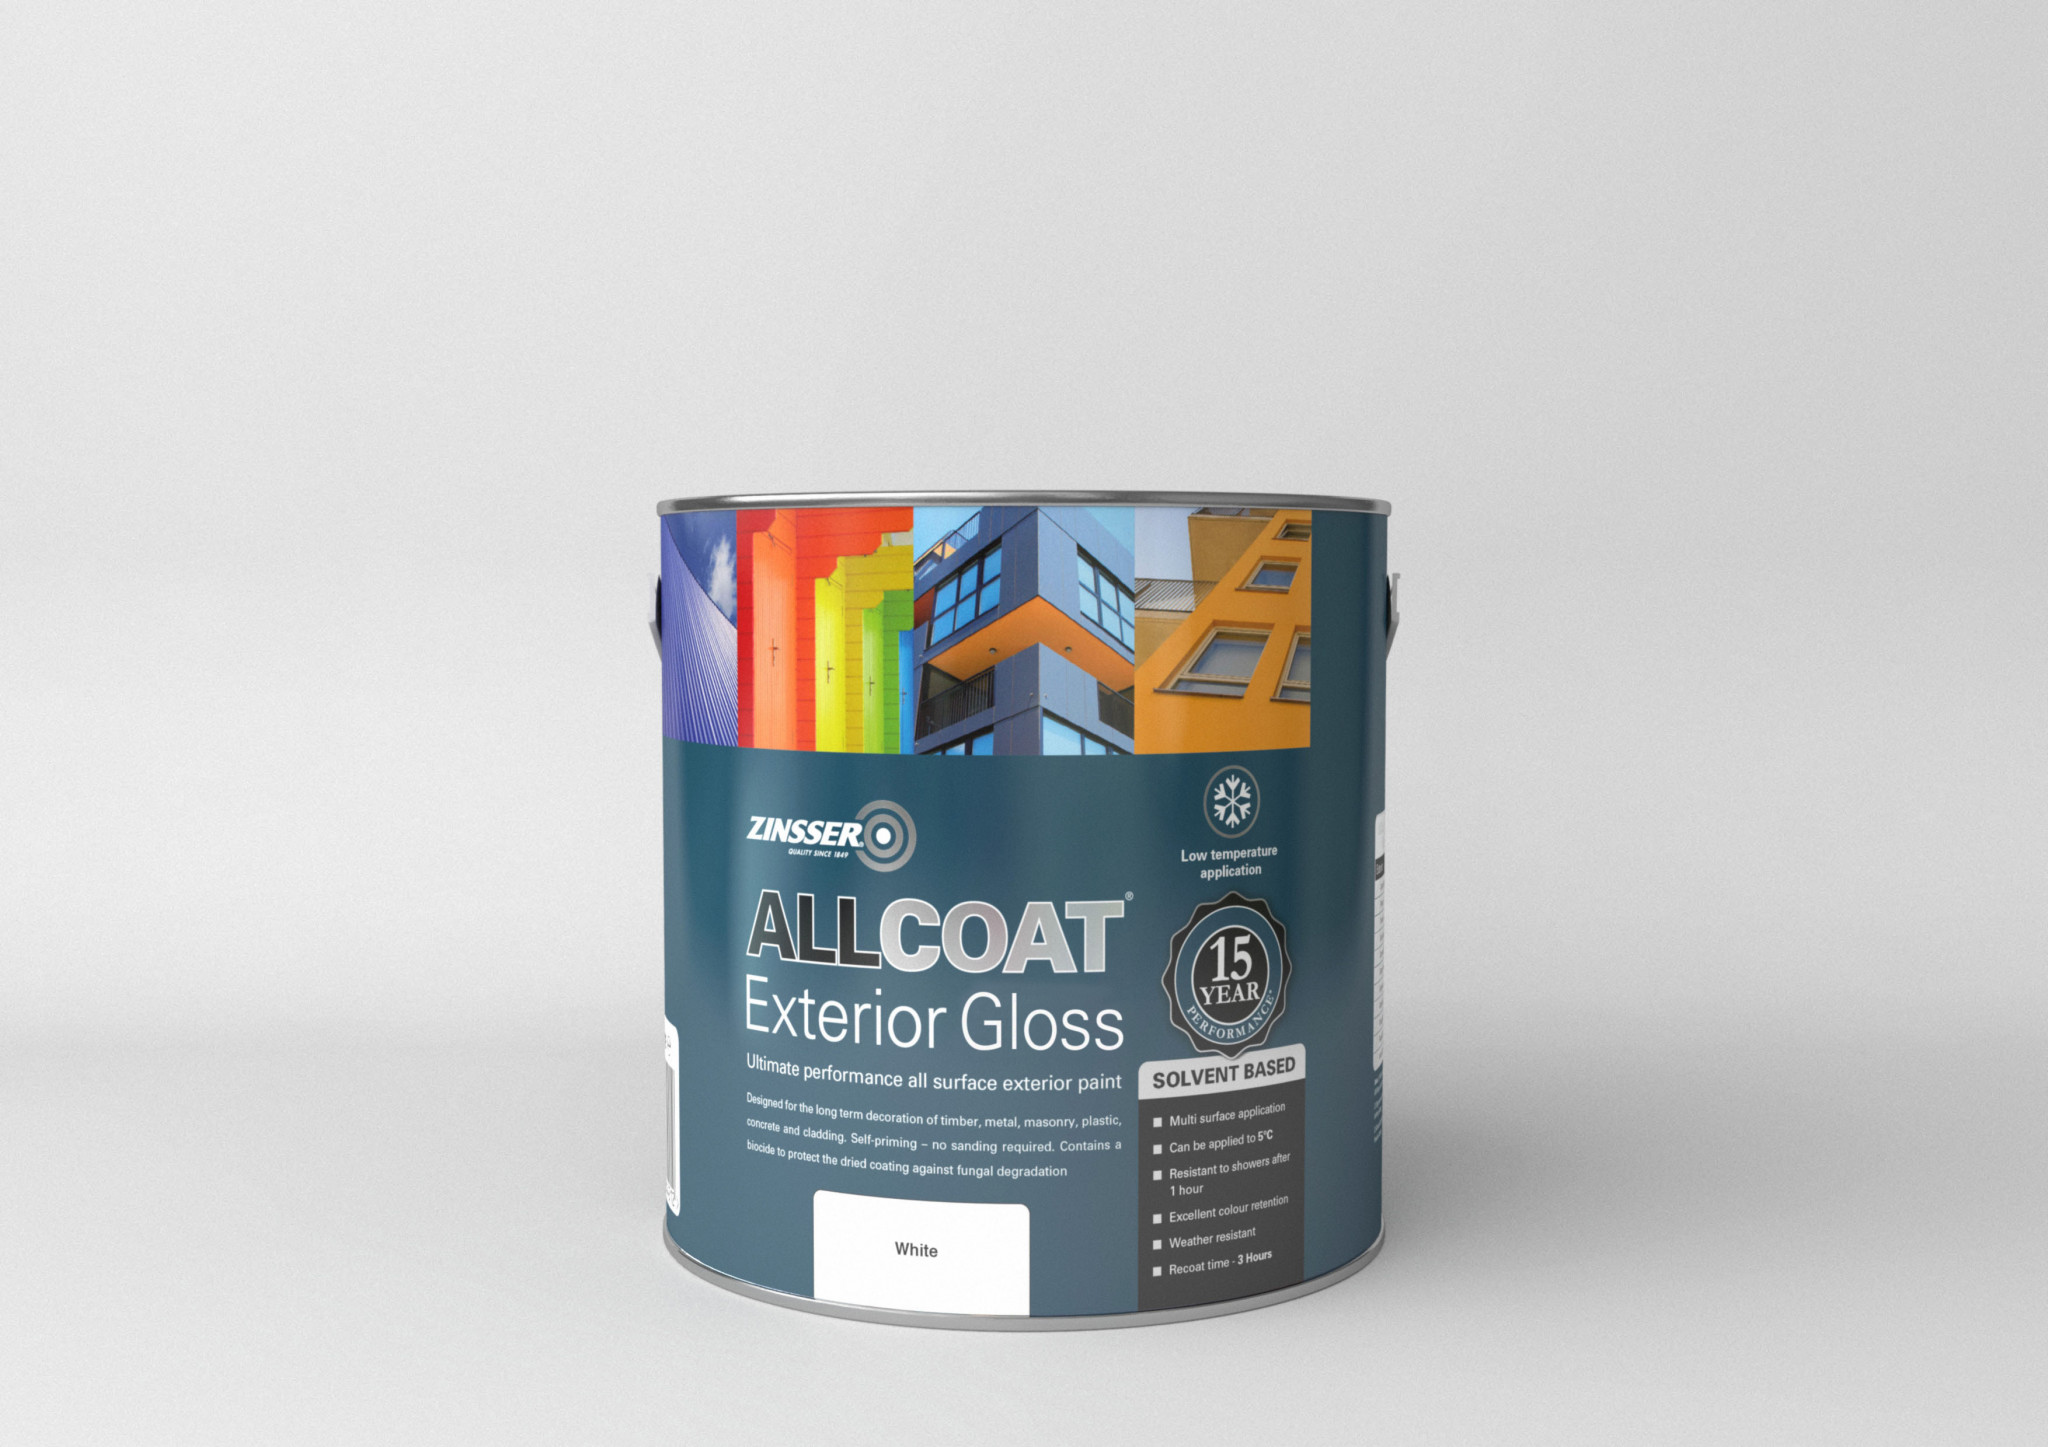 Zinsser perfecting paints and primers, decorating